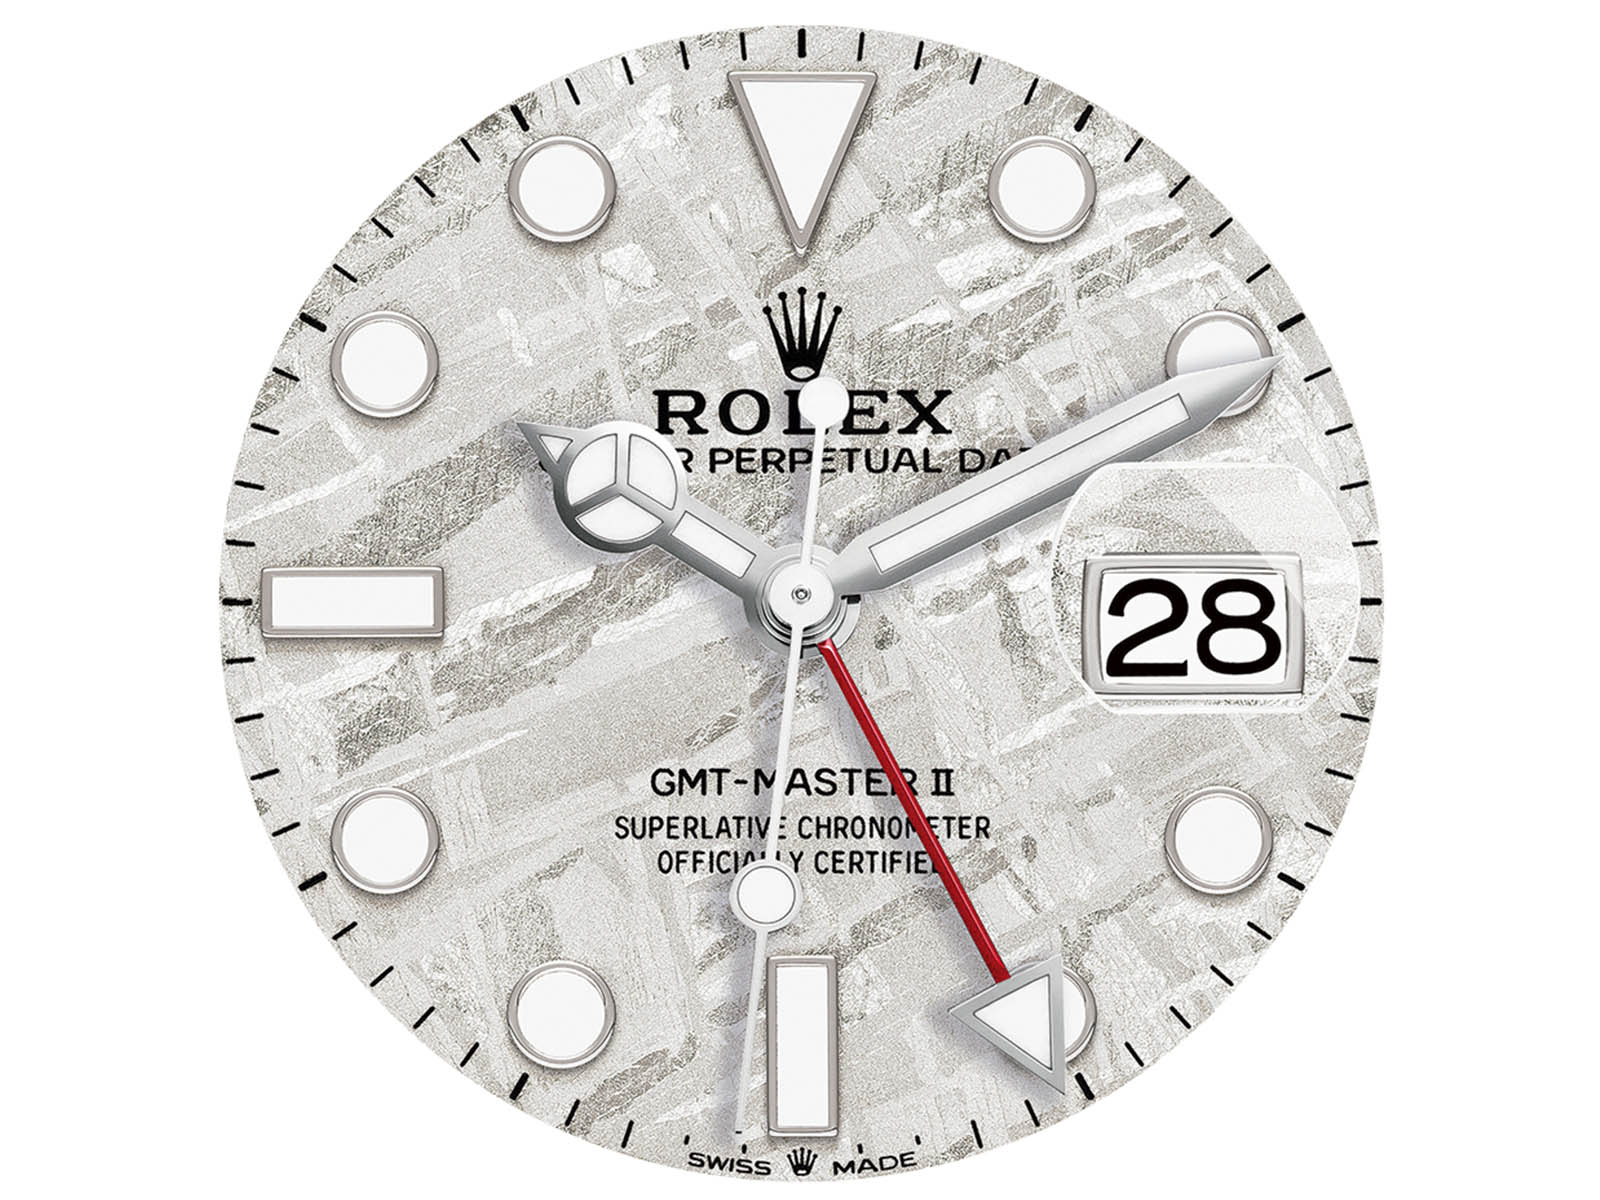 126719blro-rolex-oyster-perpetual-gmt-master-2-pepsi-white-gold-2.jpg